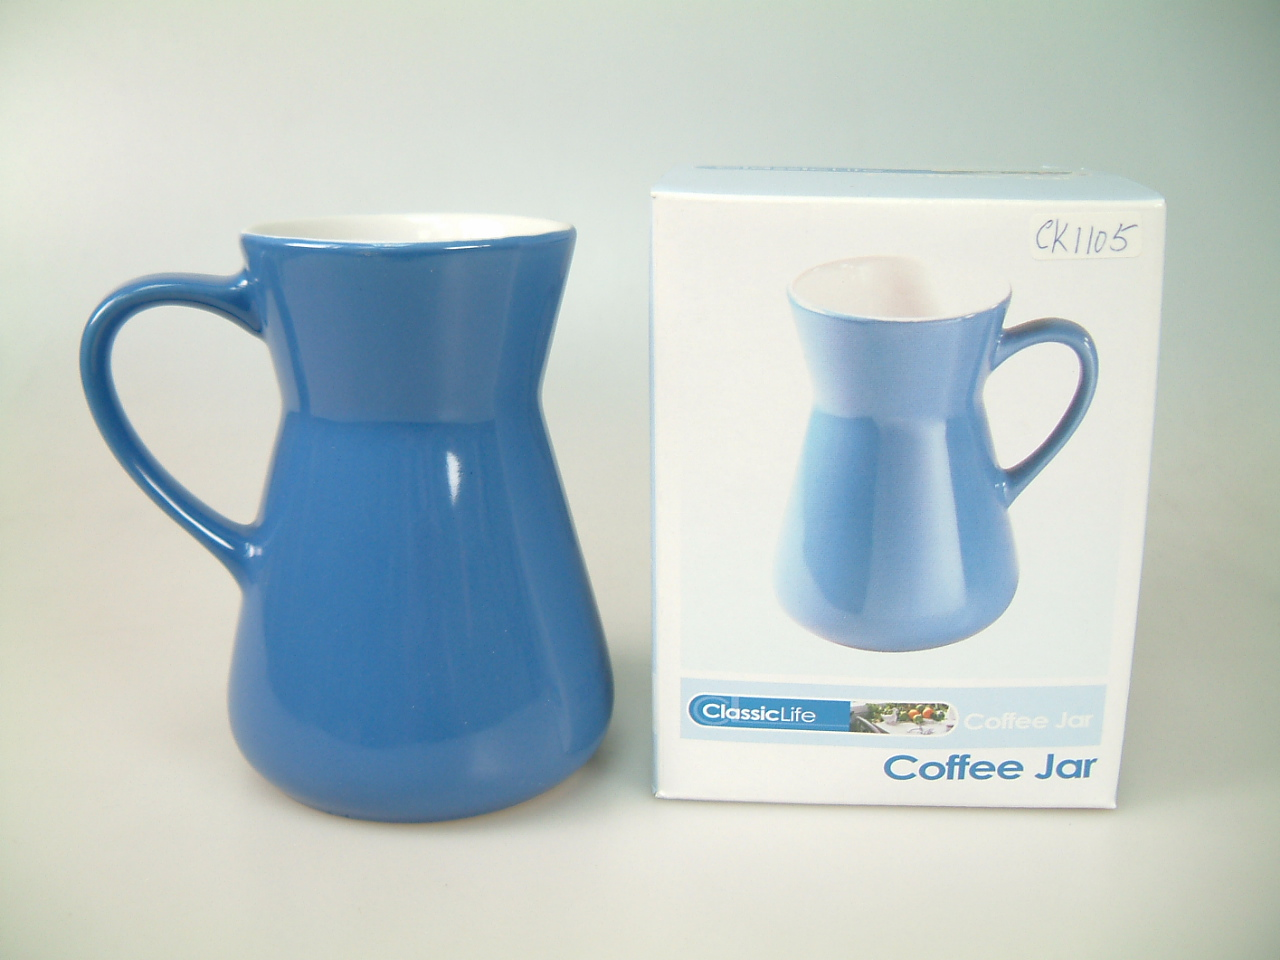 CK1105 CERAIC COFFEE JAR